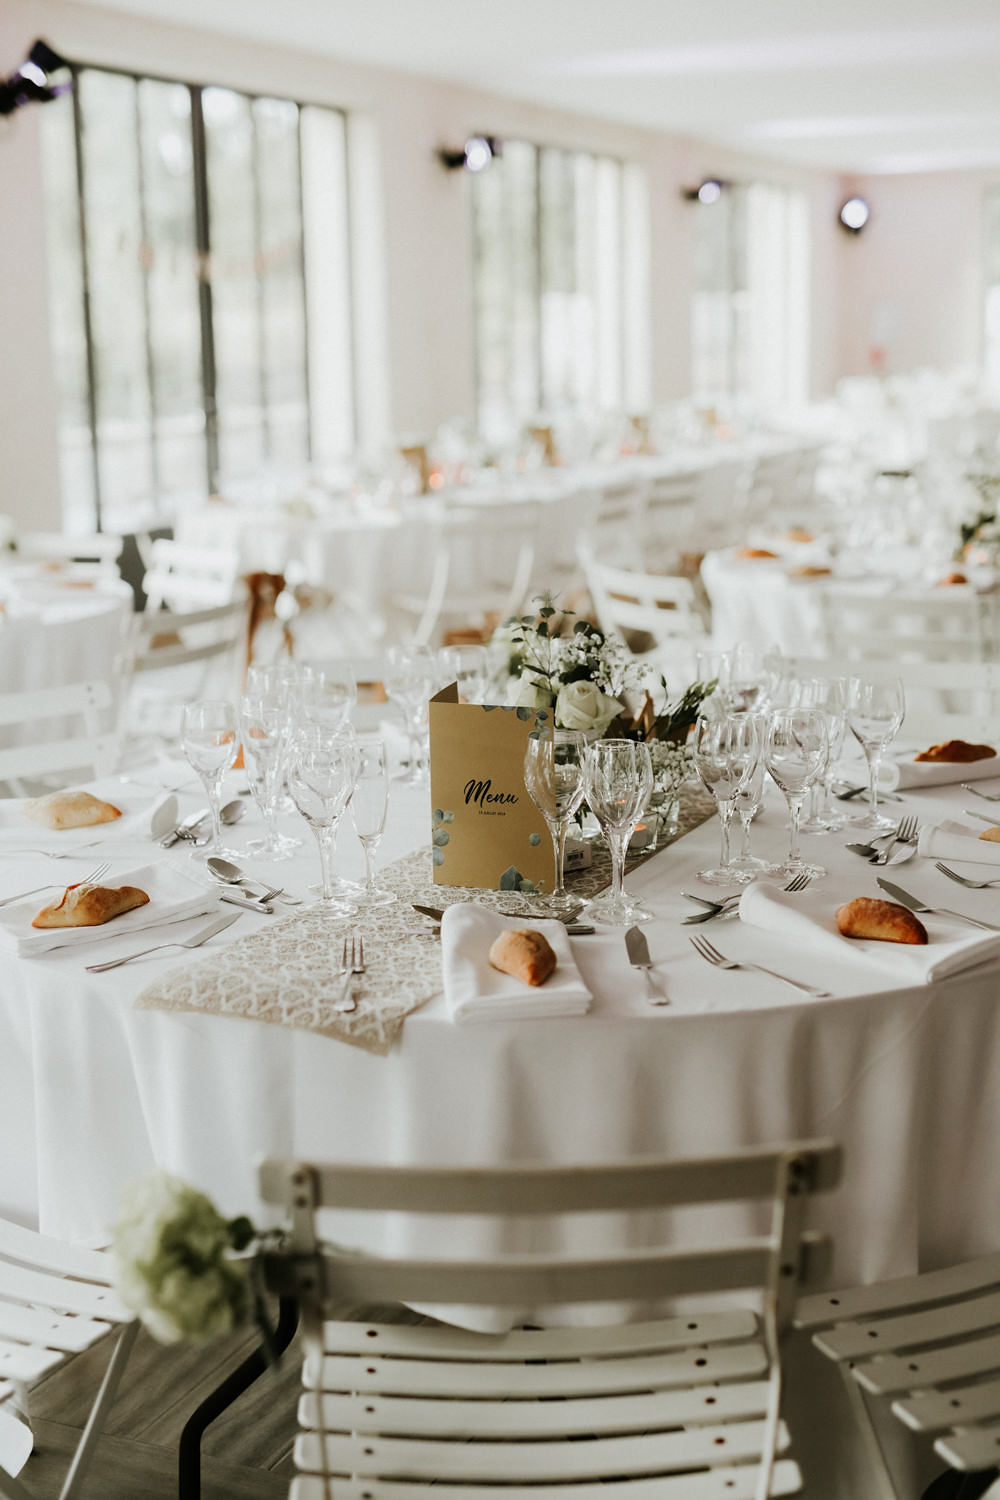 decoration de table mariage boheme chic blanc